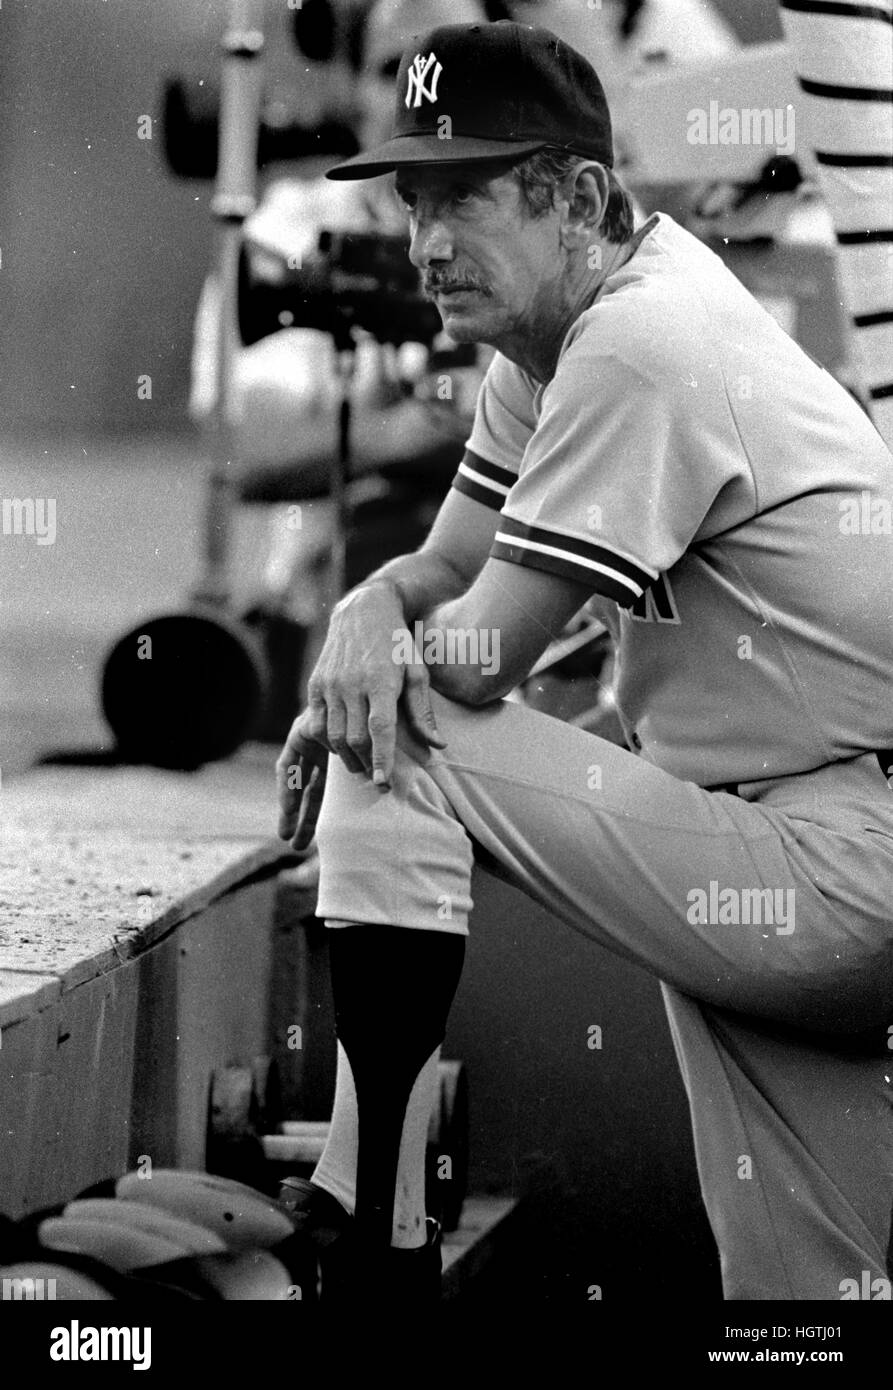 New York Yankees manager Billy Martin surveys the field prior to game  with the Texas Rangers at the old Arlington - Stock Image